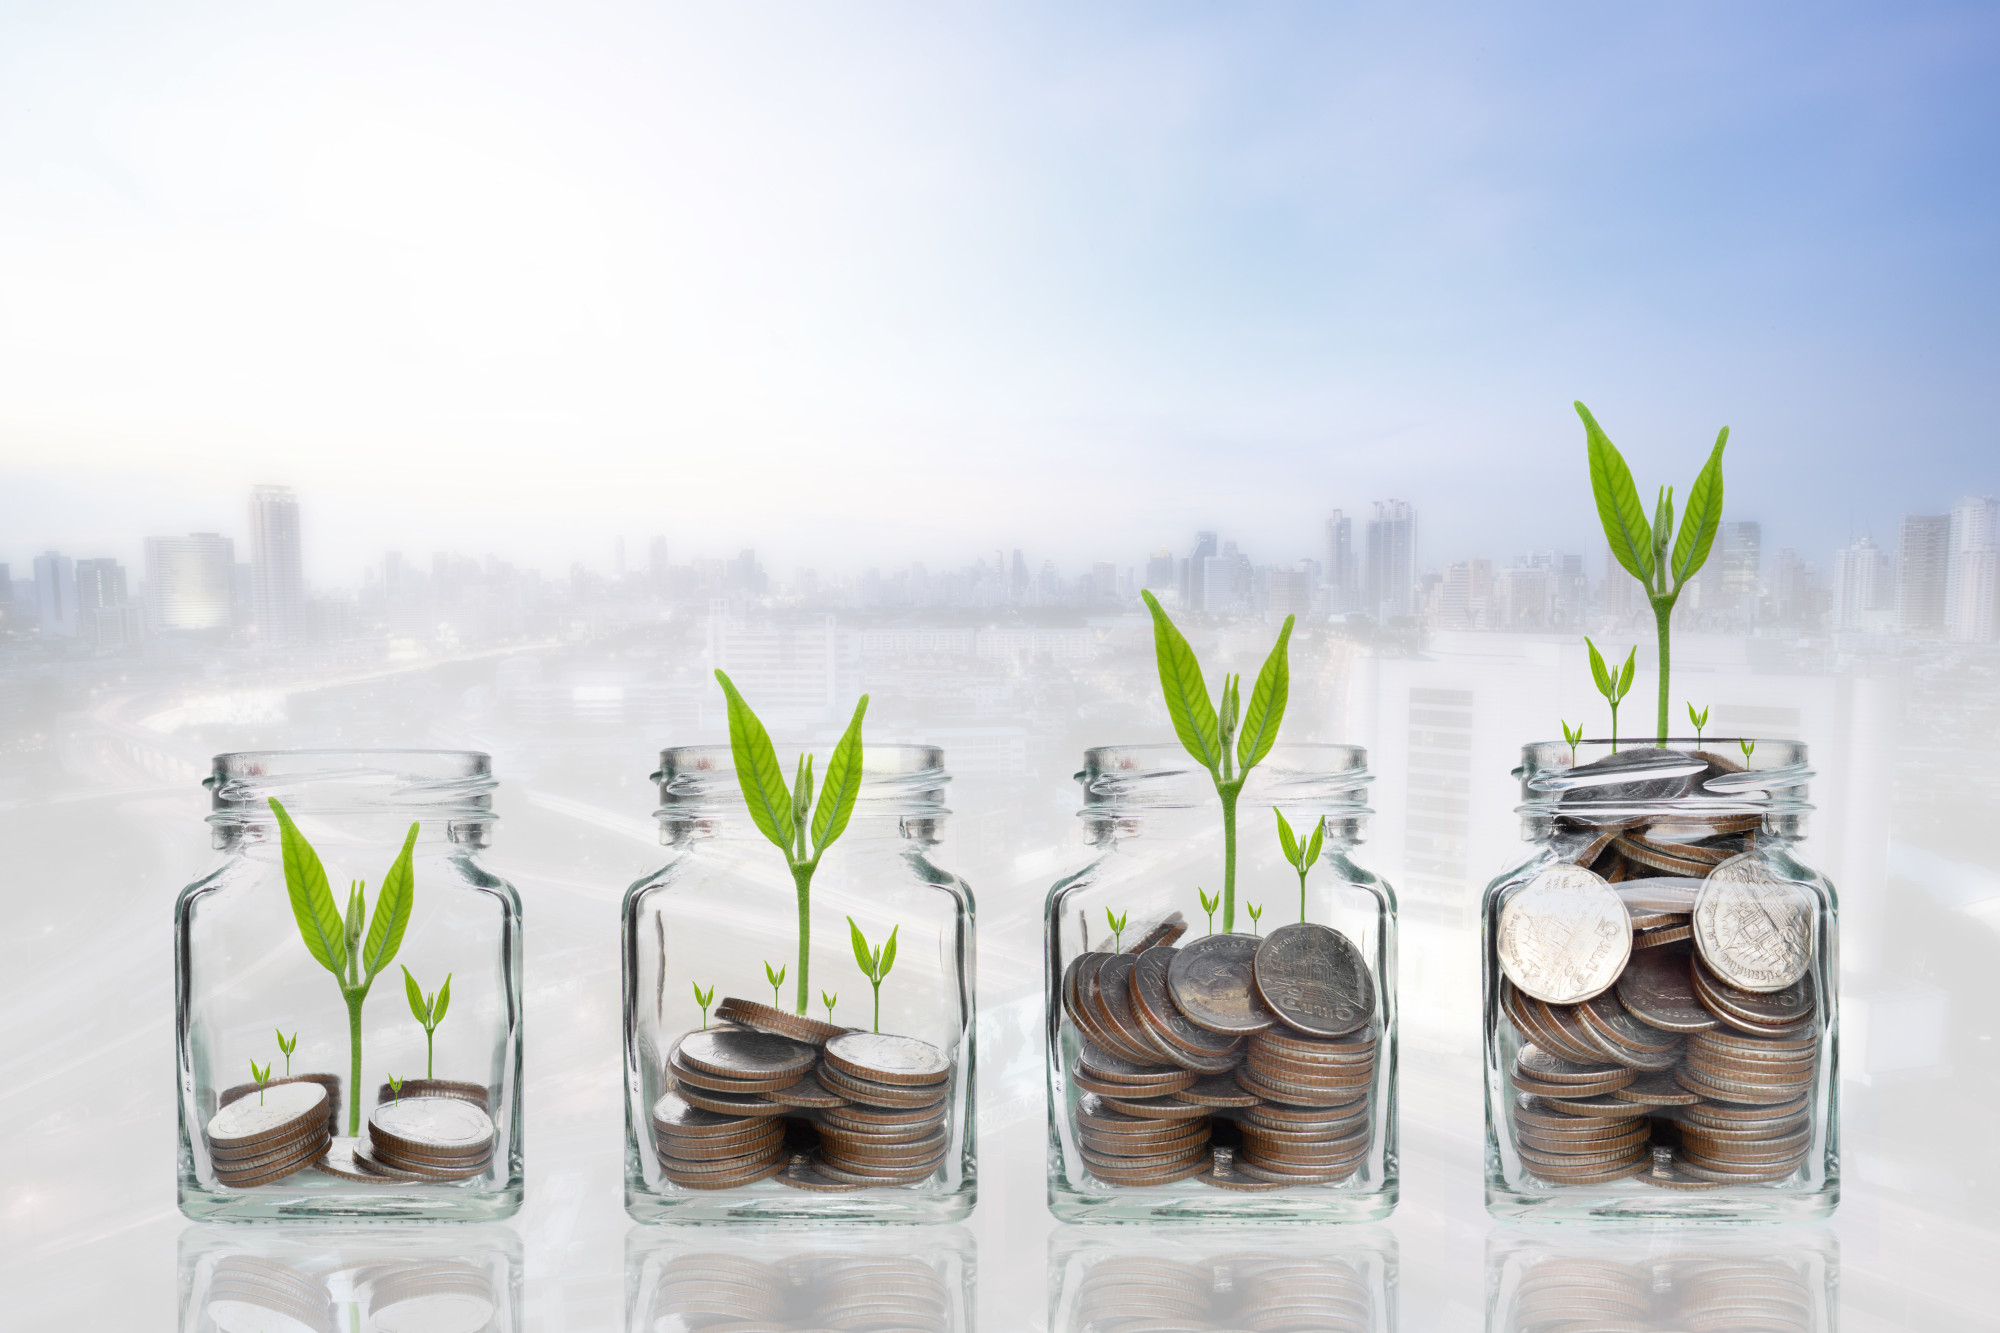 jars of money with growing plants